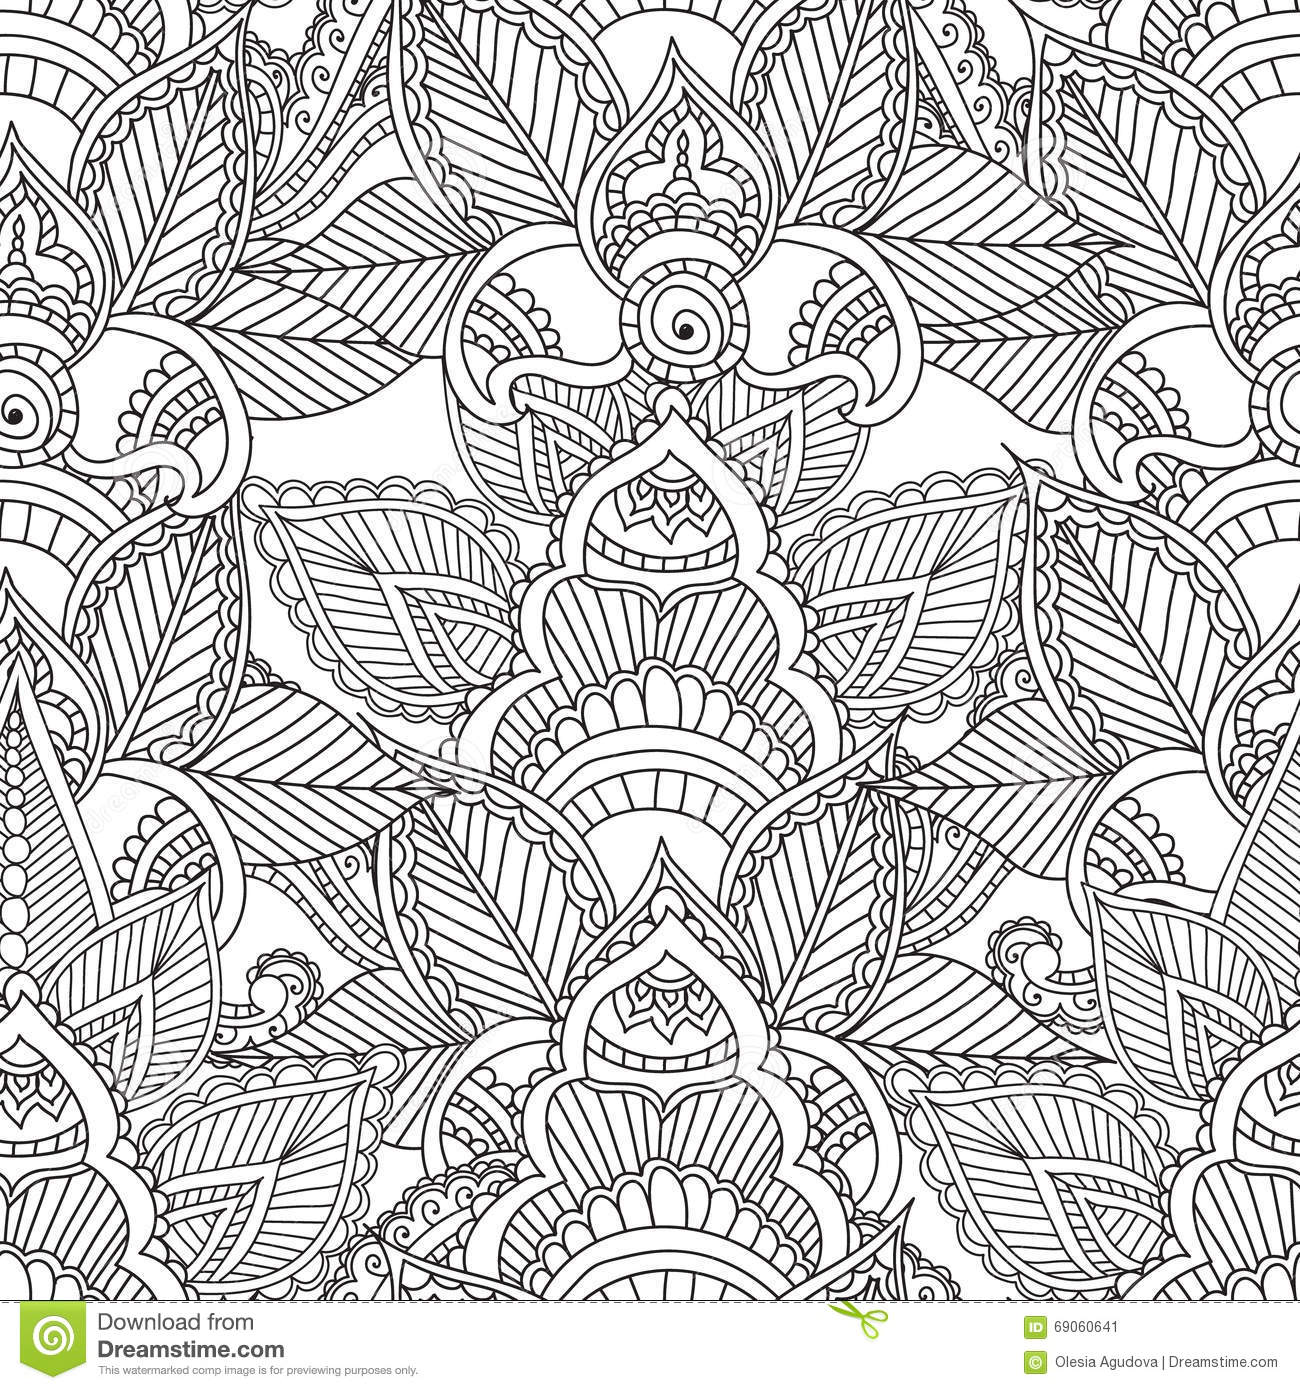 Coloring pages for adults seamles henna mehndi doodles abstract floral elements